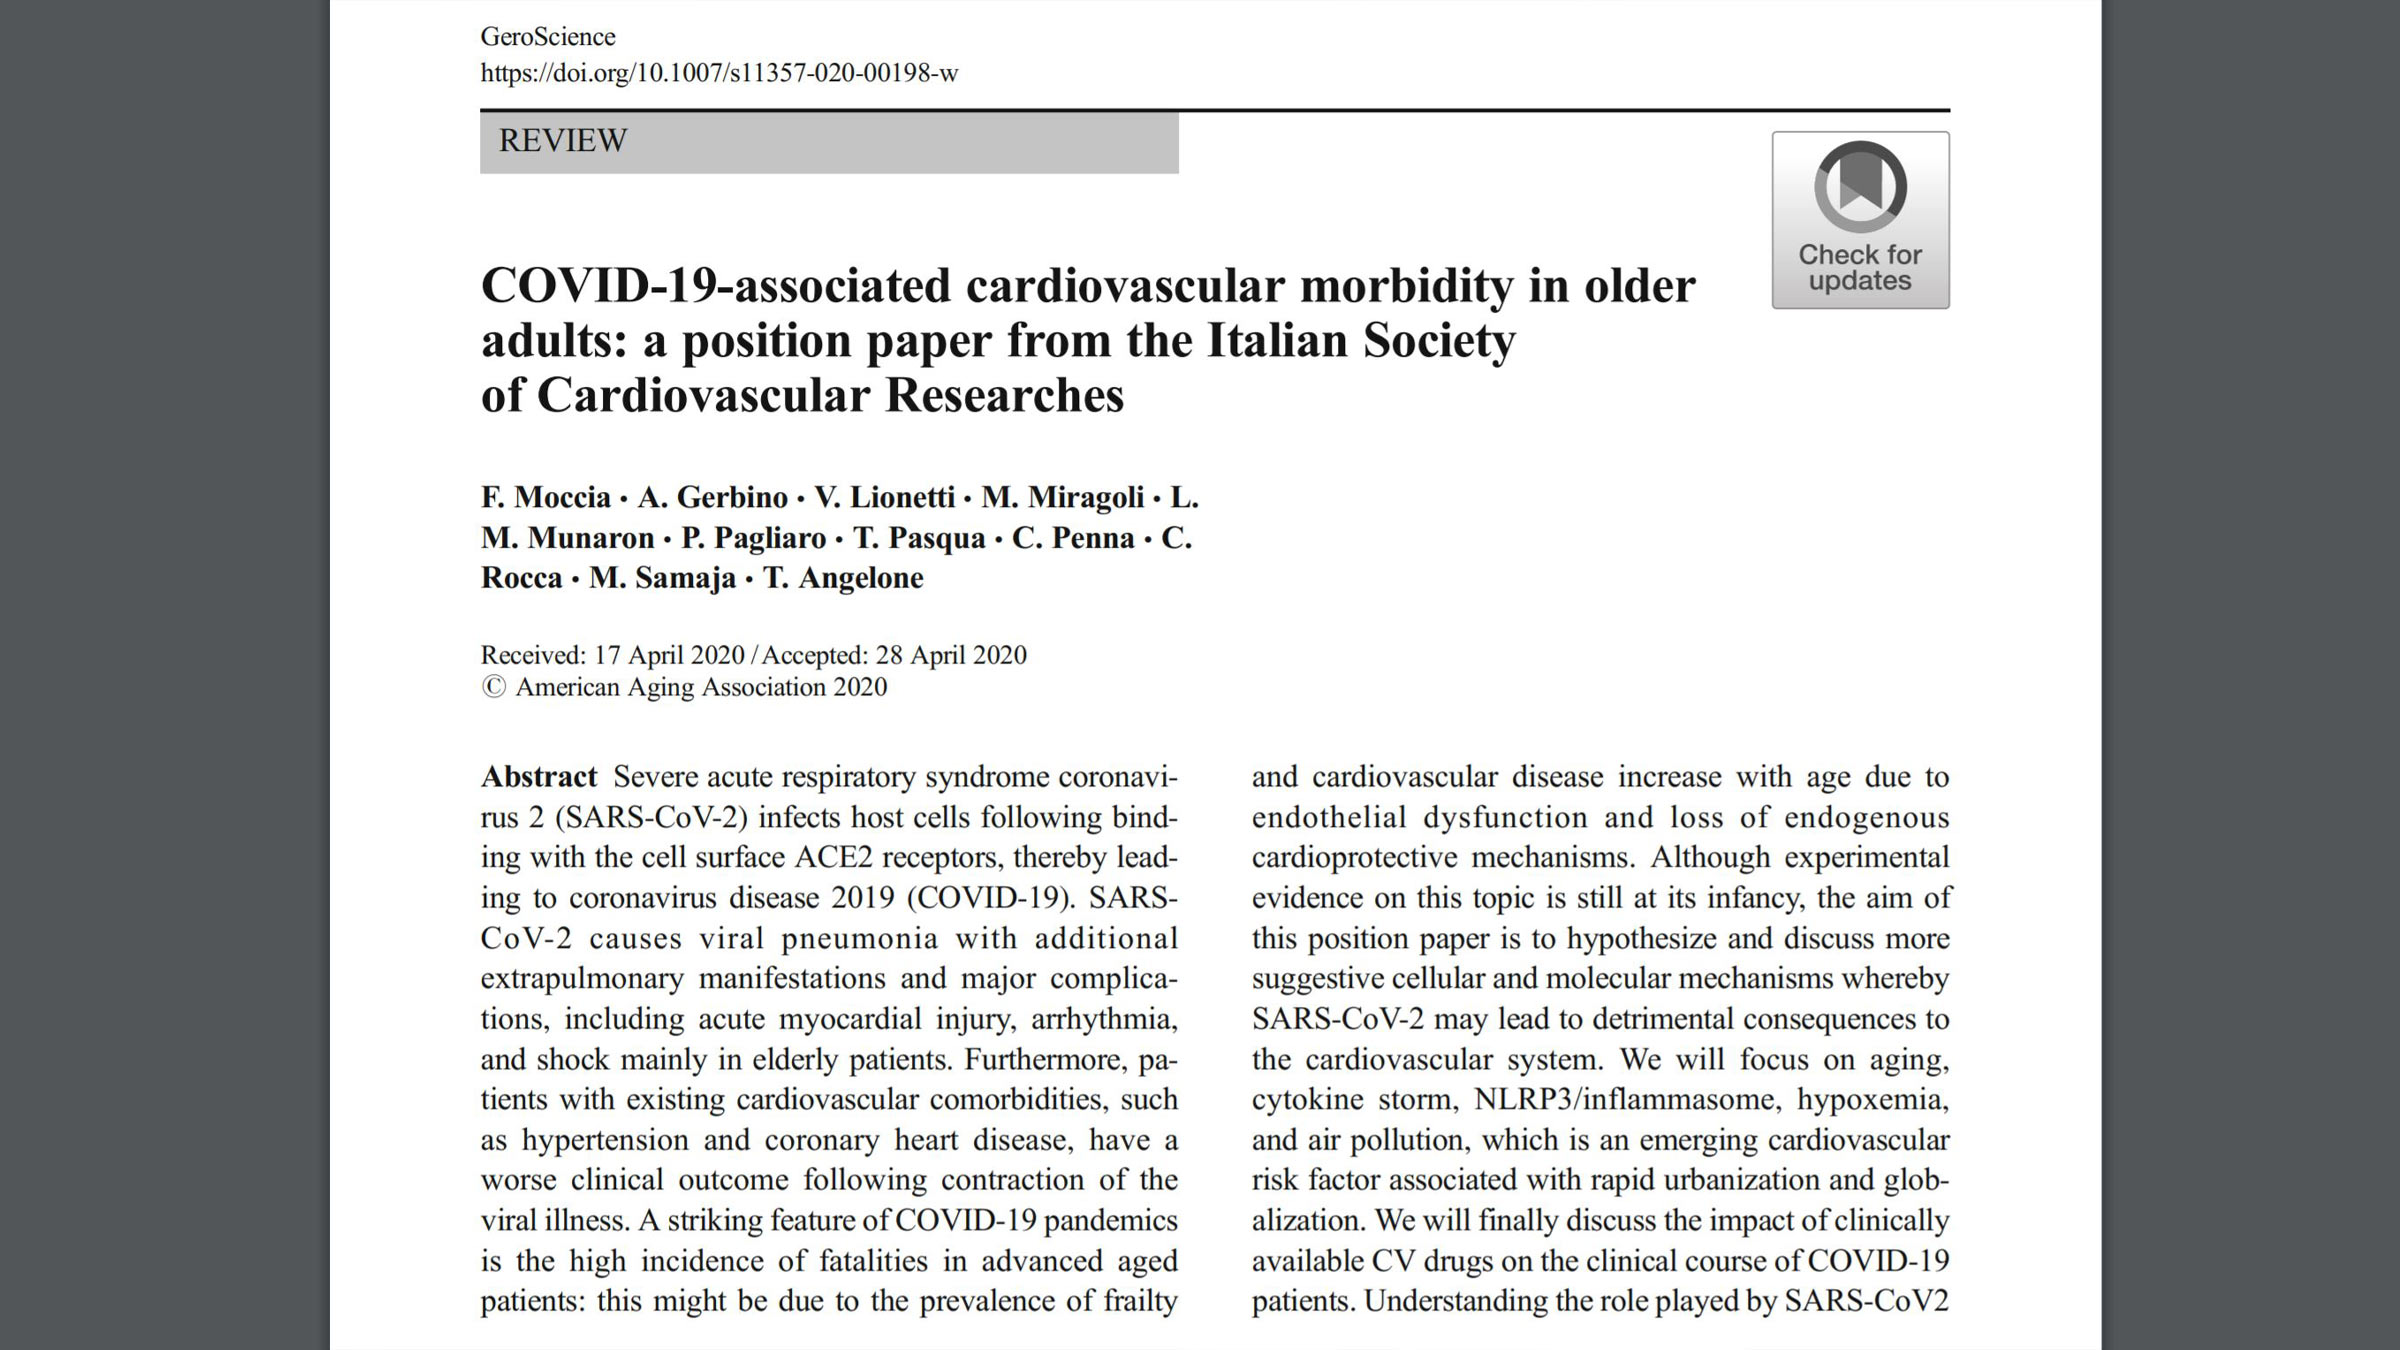 COVID-19-associated cardiovascular morbidity in older adults